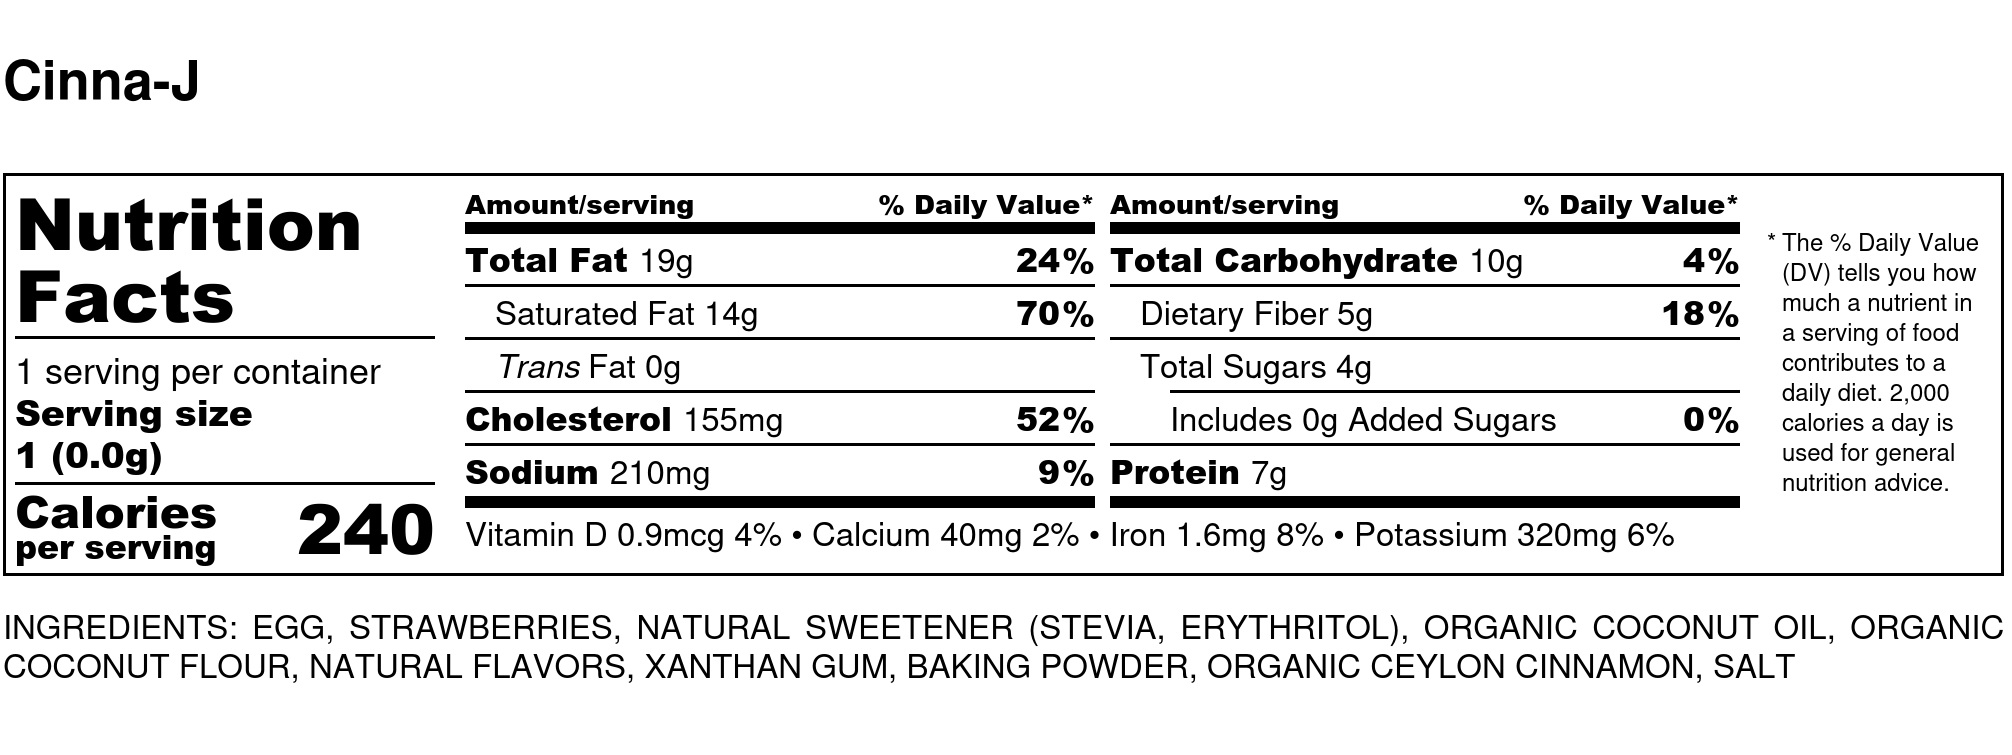 cinna-j-nutrition-label.jpg